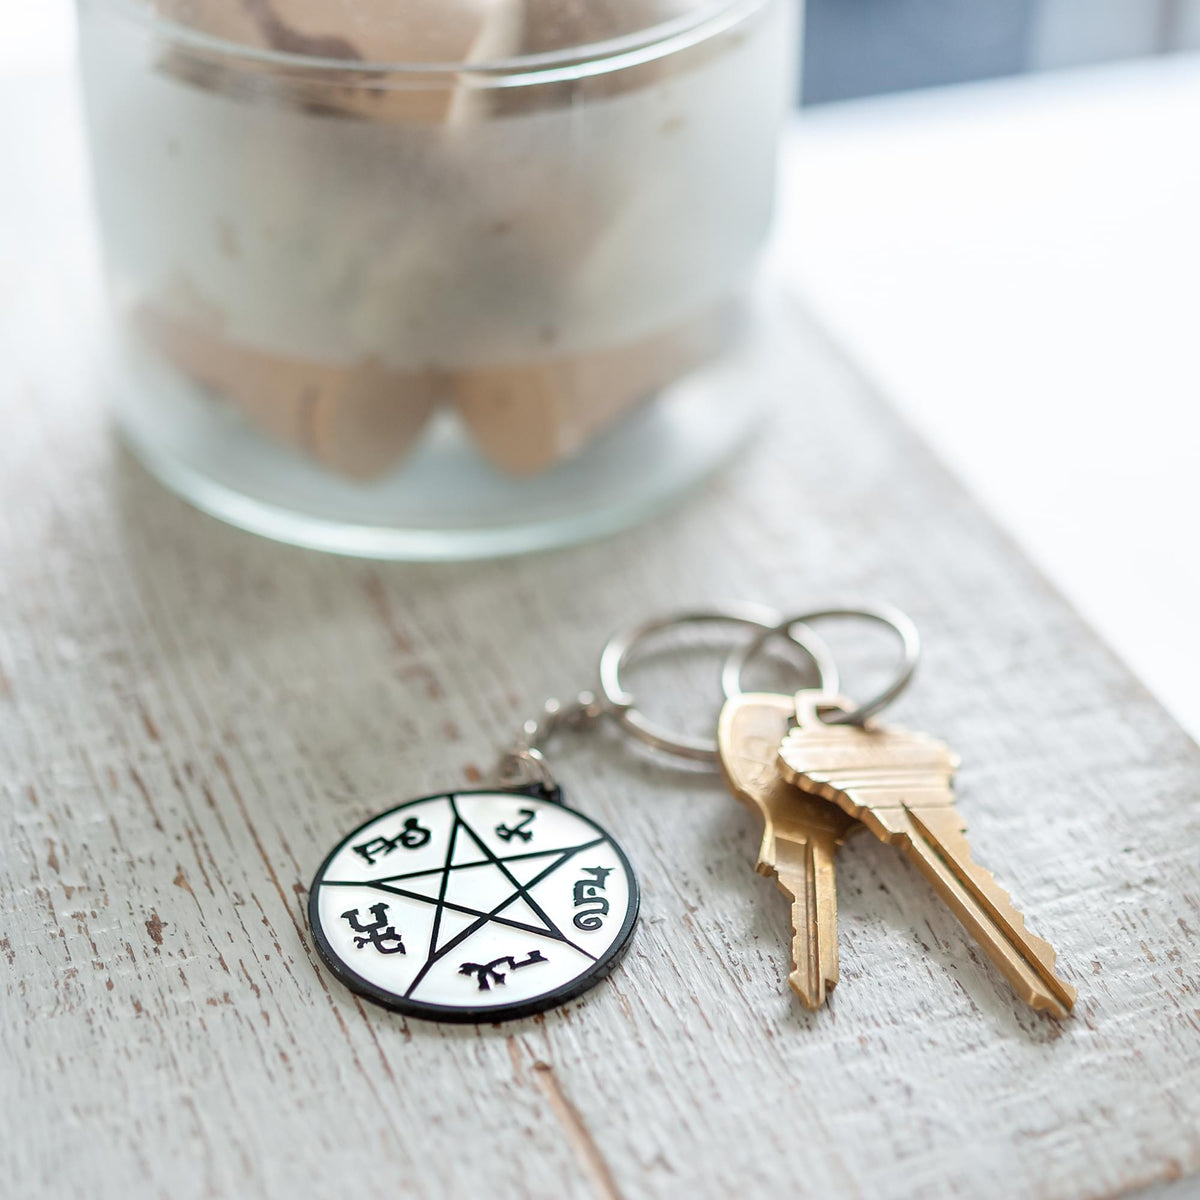 Supernatural Devil's Trap Soft Enamel/Metal Key Chain